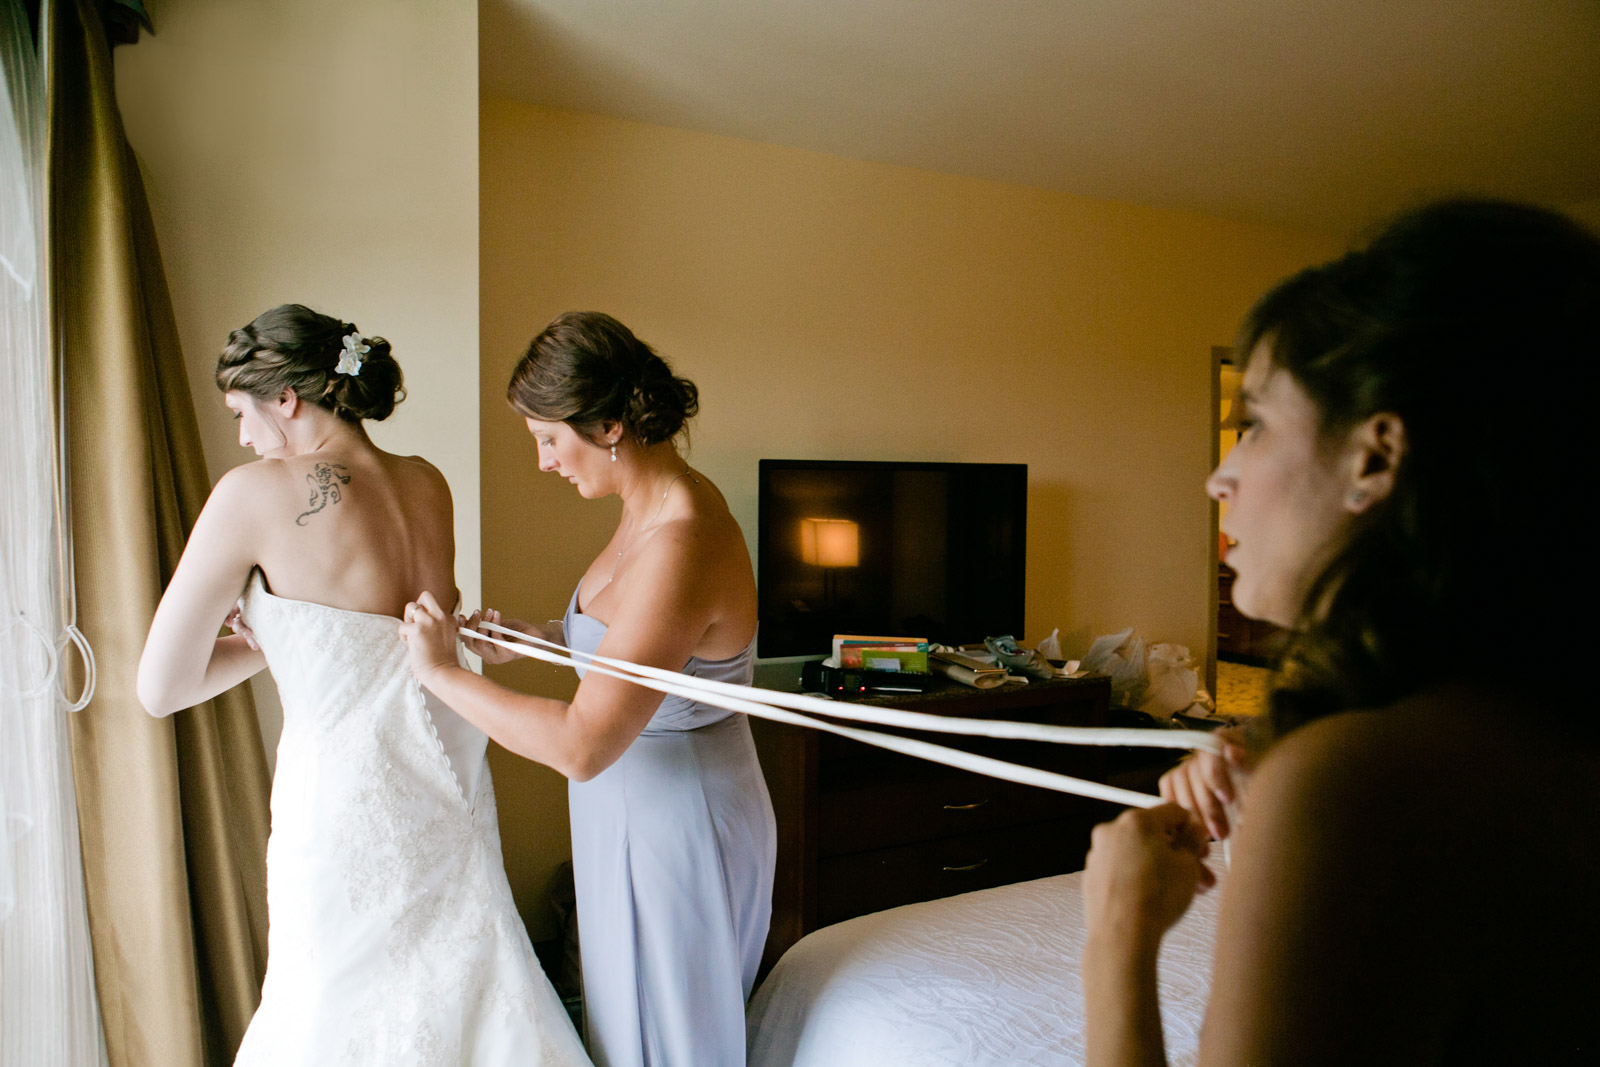 two bridesmaids help a bride get laced into her dress